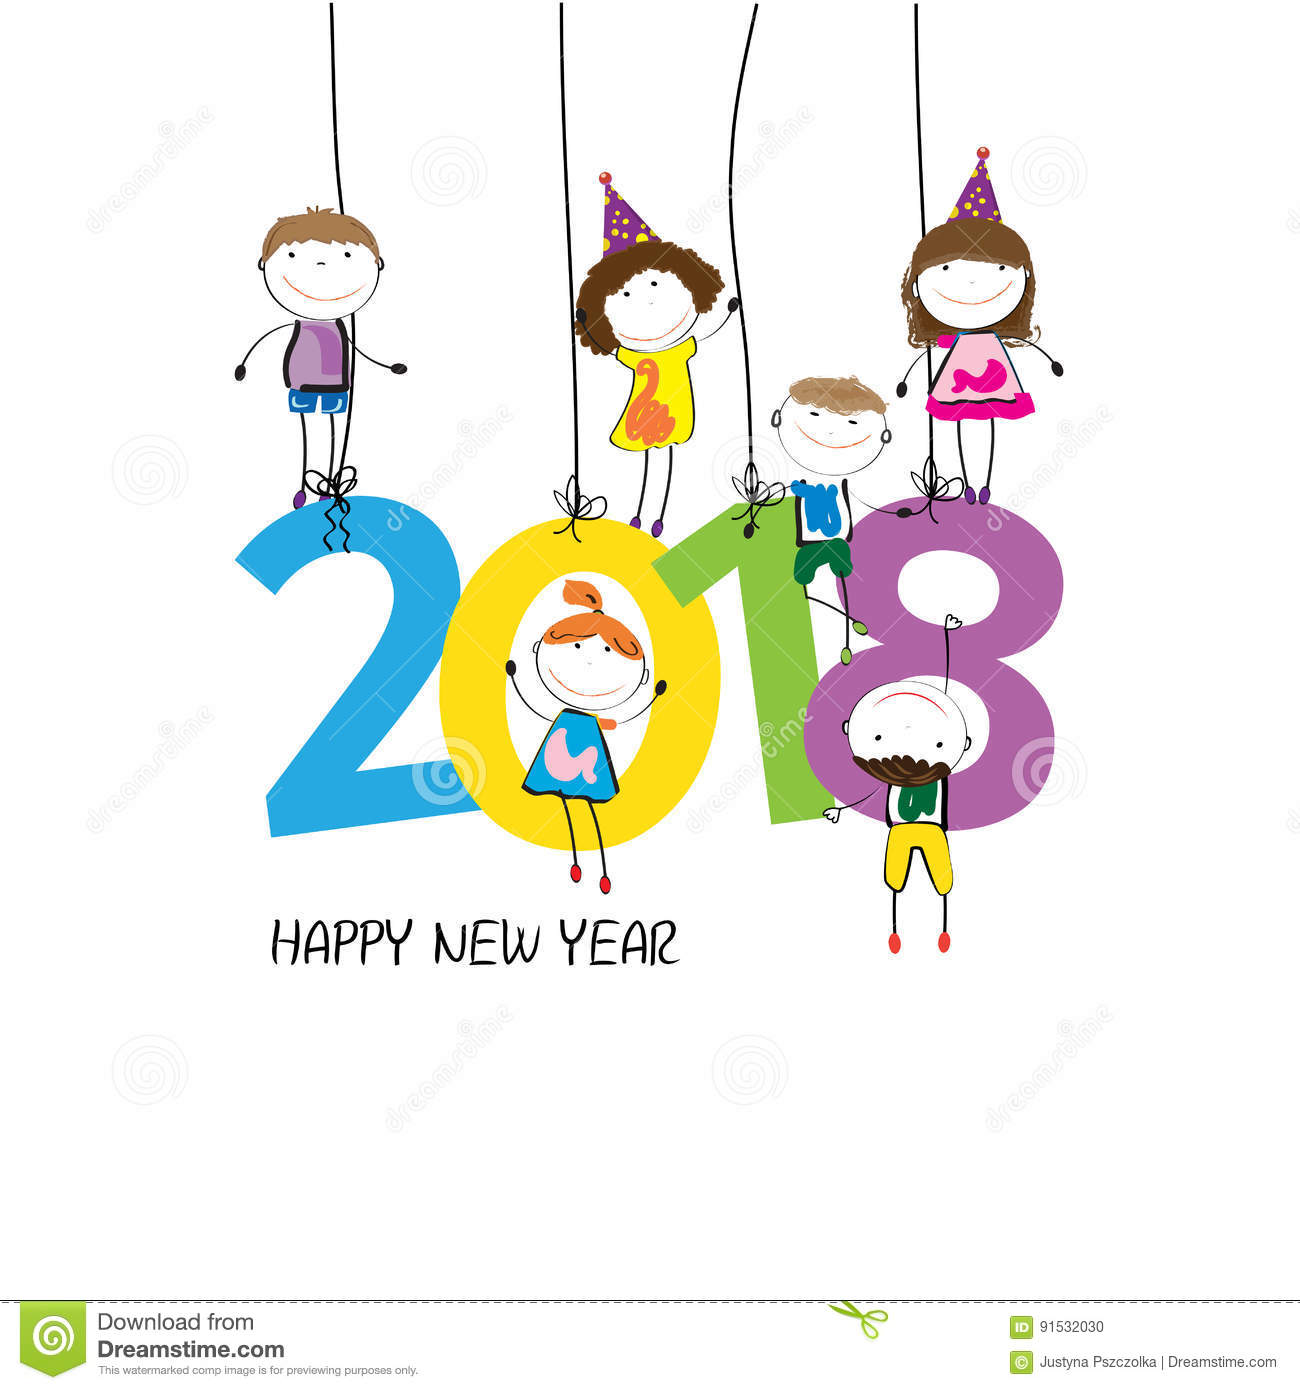 2018 clipart new year. Happy merry christmas newyearcolorfulcardhappy